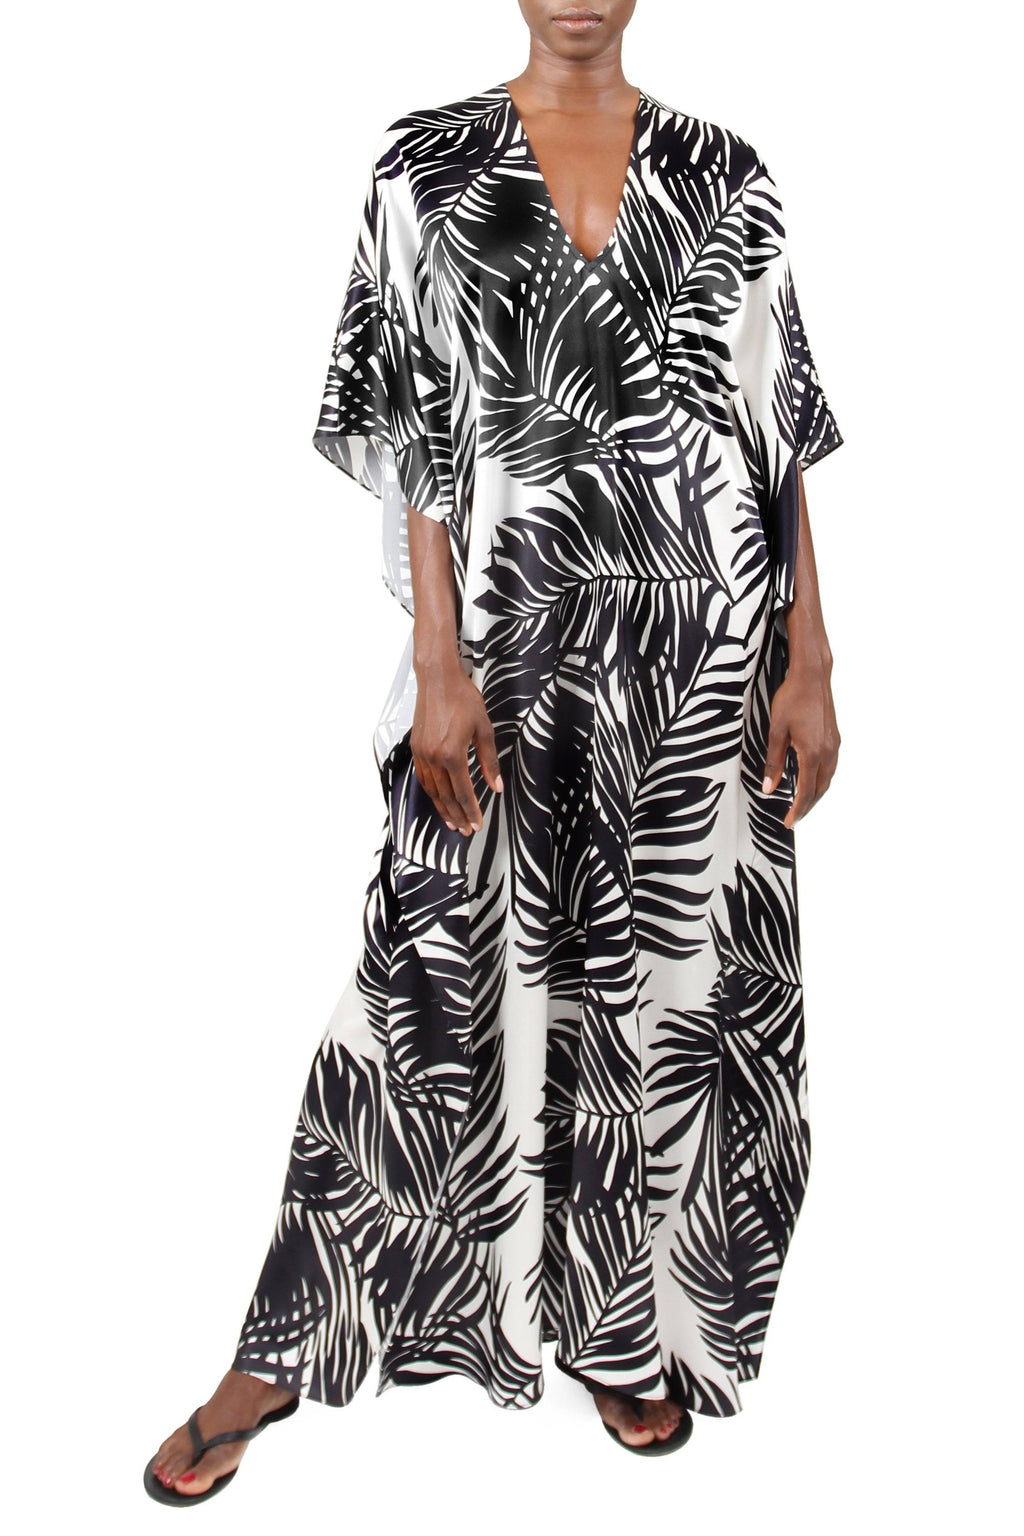 Palm Printed Silk Boubou Marie France Van Damme One Size White Black Palm